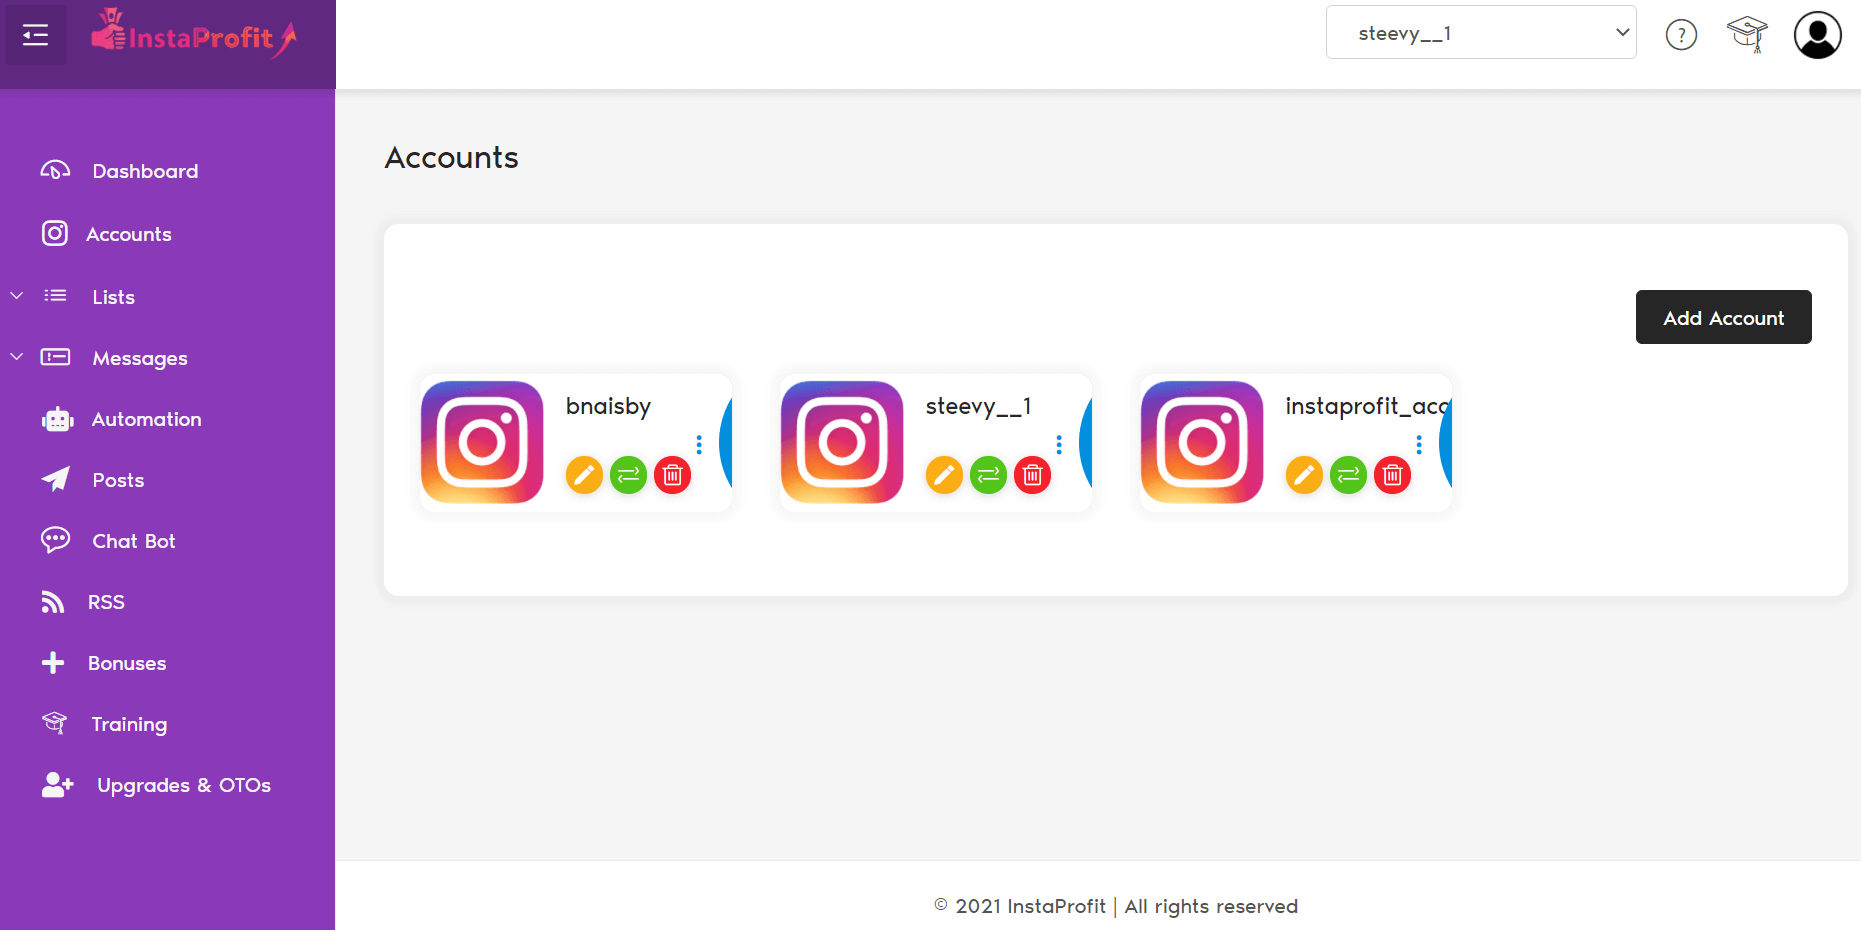 InstaProfit-Review-Accounts